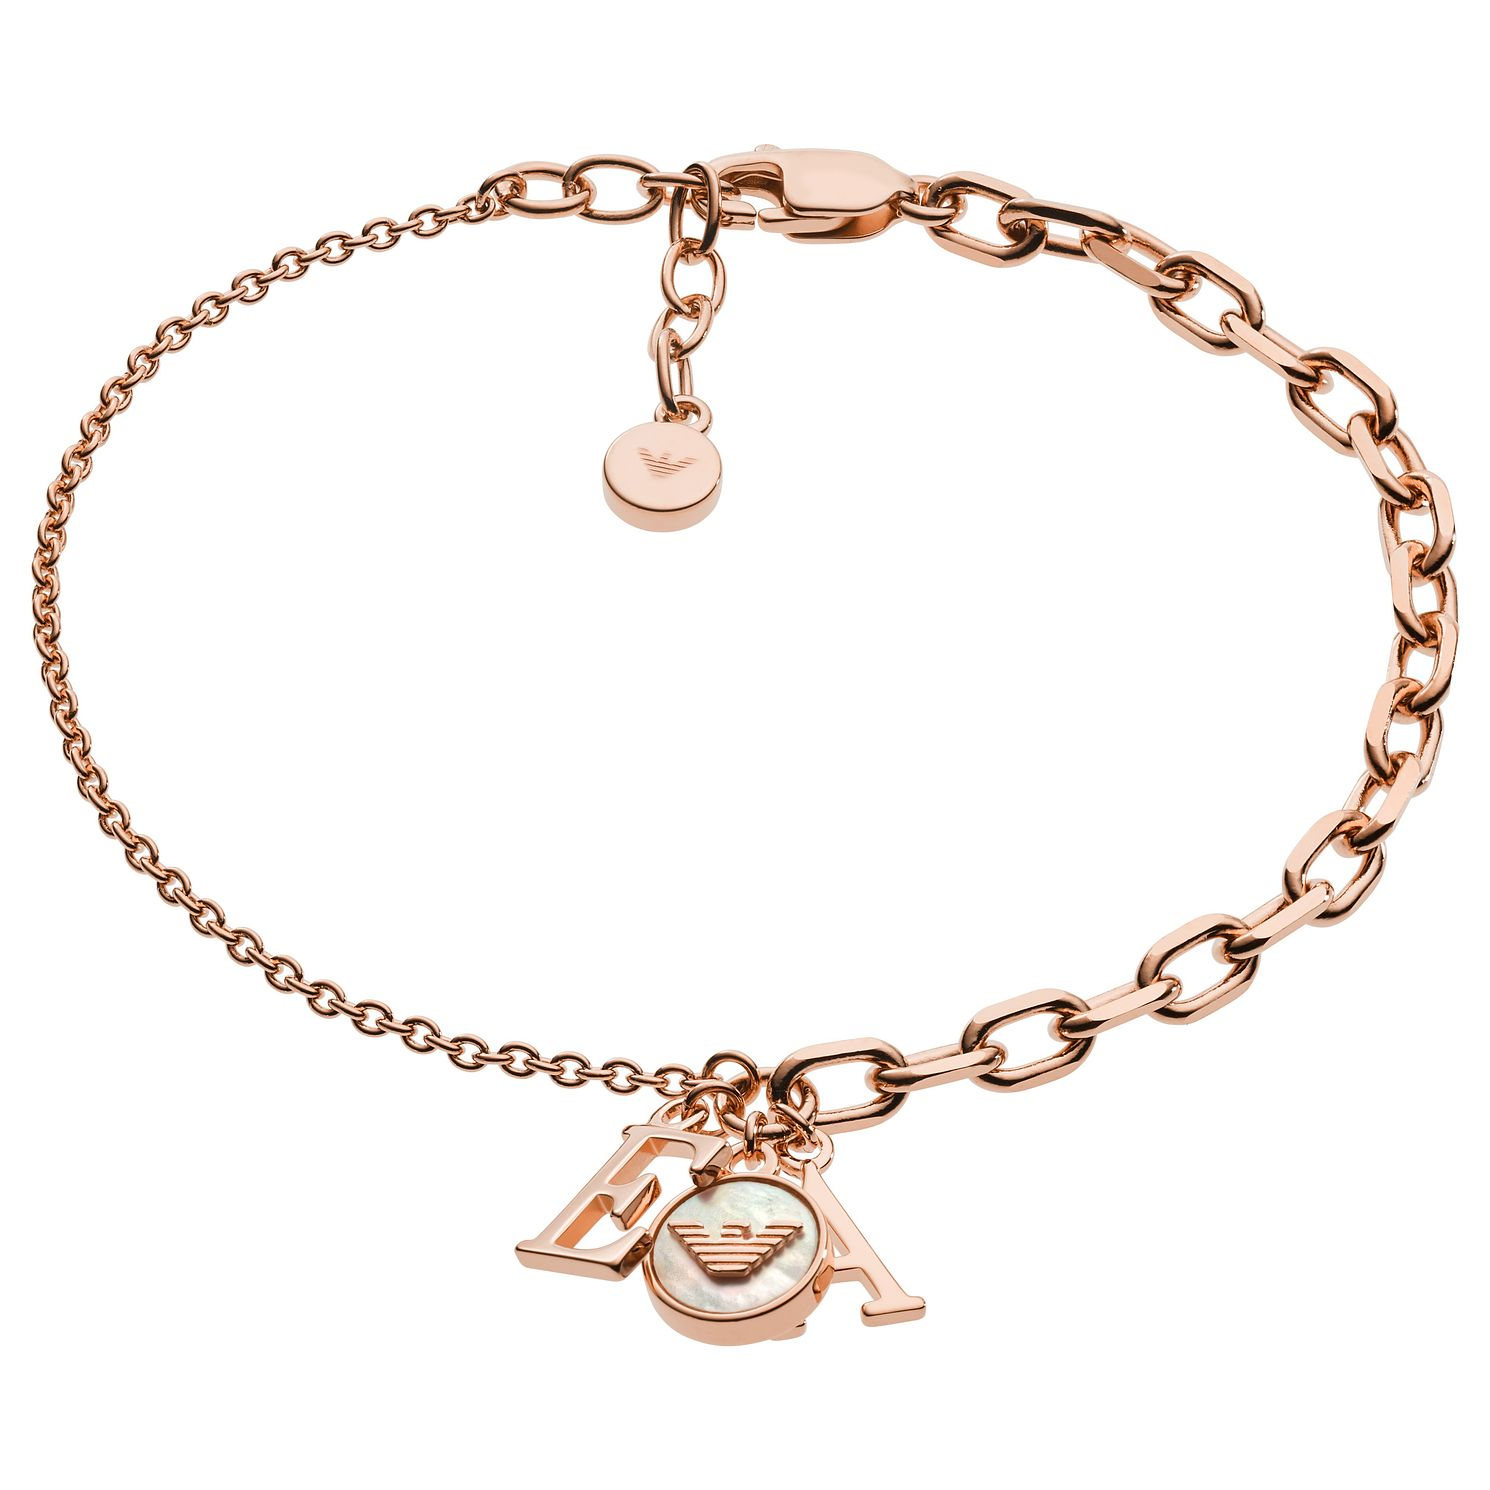 Emporio Armani Ladies' Rose Gold Tone Bracelet - Product number 2358263